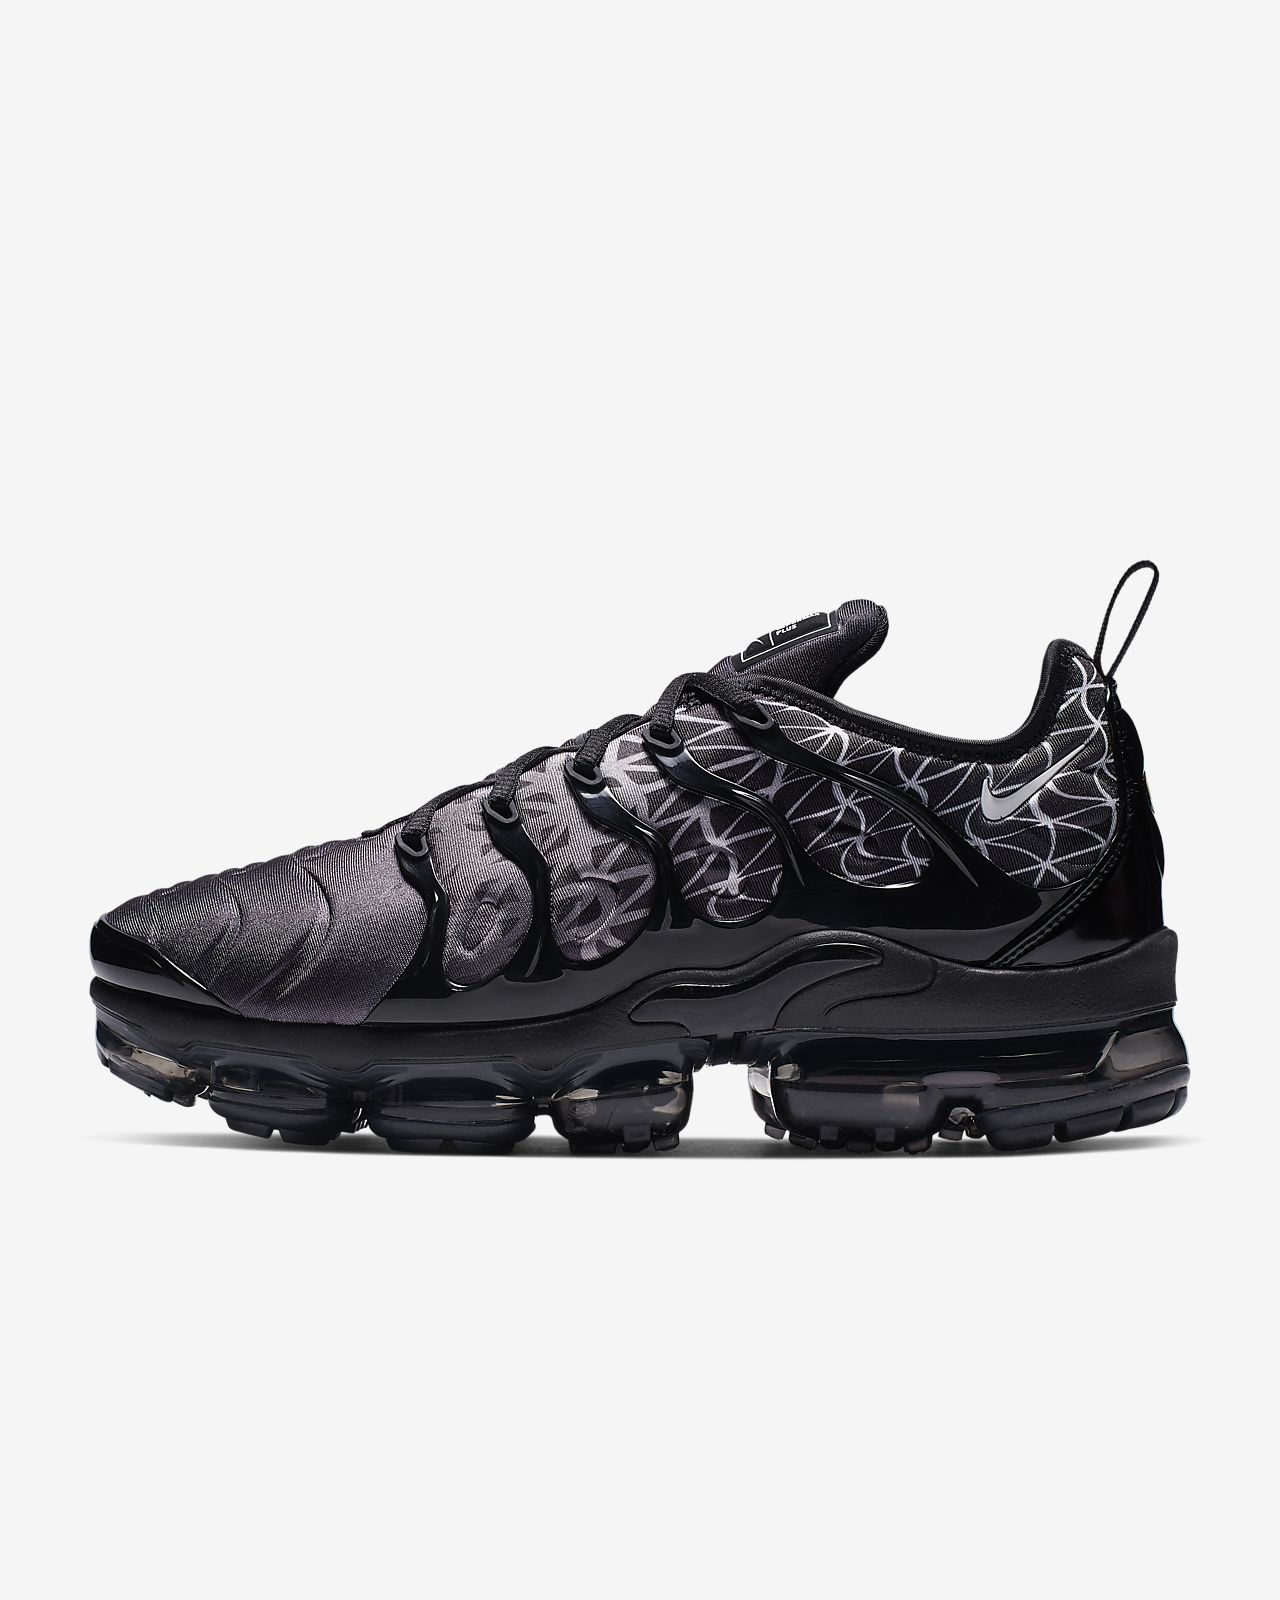 sneakers for cheap cb936 1b4a0 ... Chaussure Nike Air VaporMax Plus pour Homme